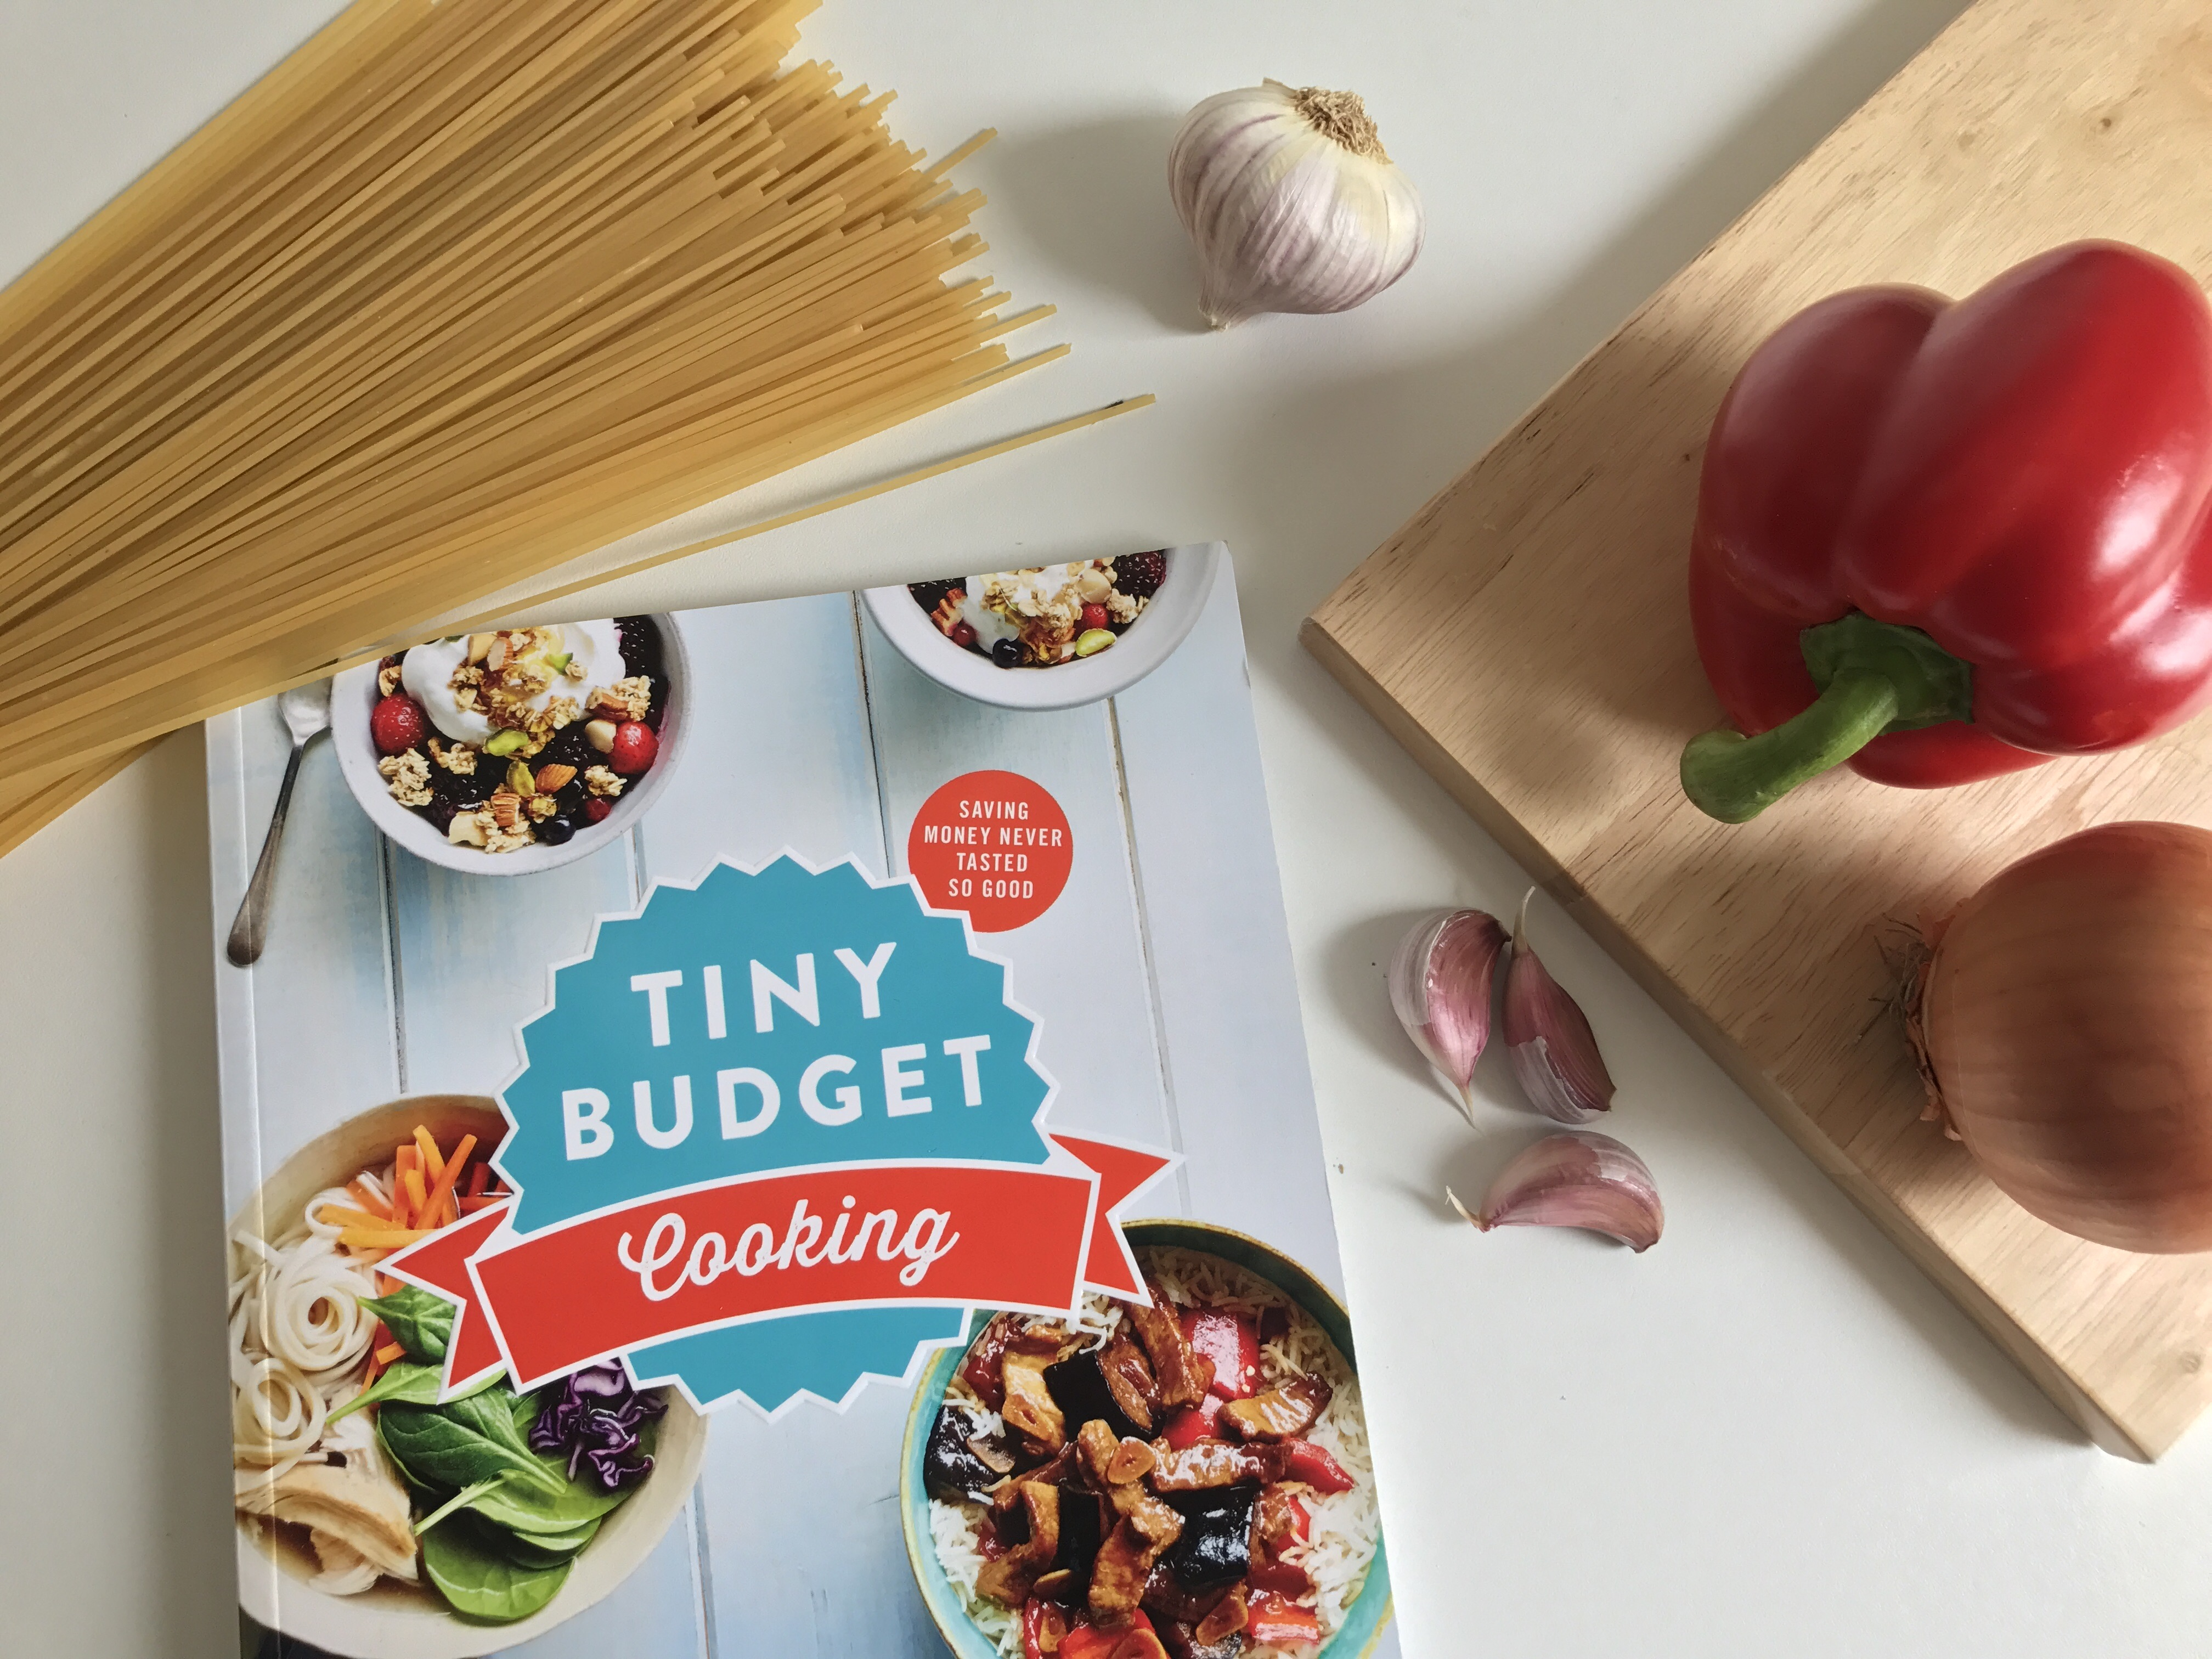 The Tiny Budget Cooking book